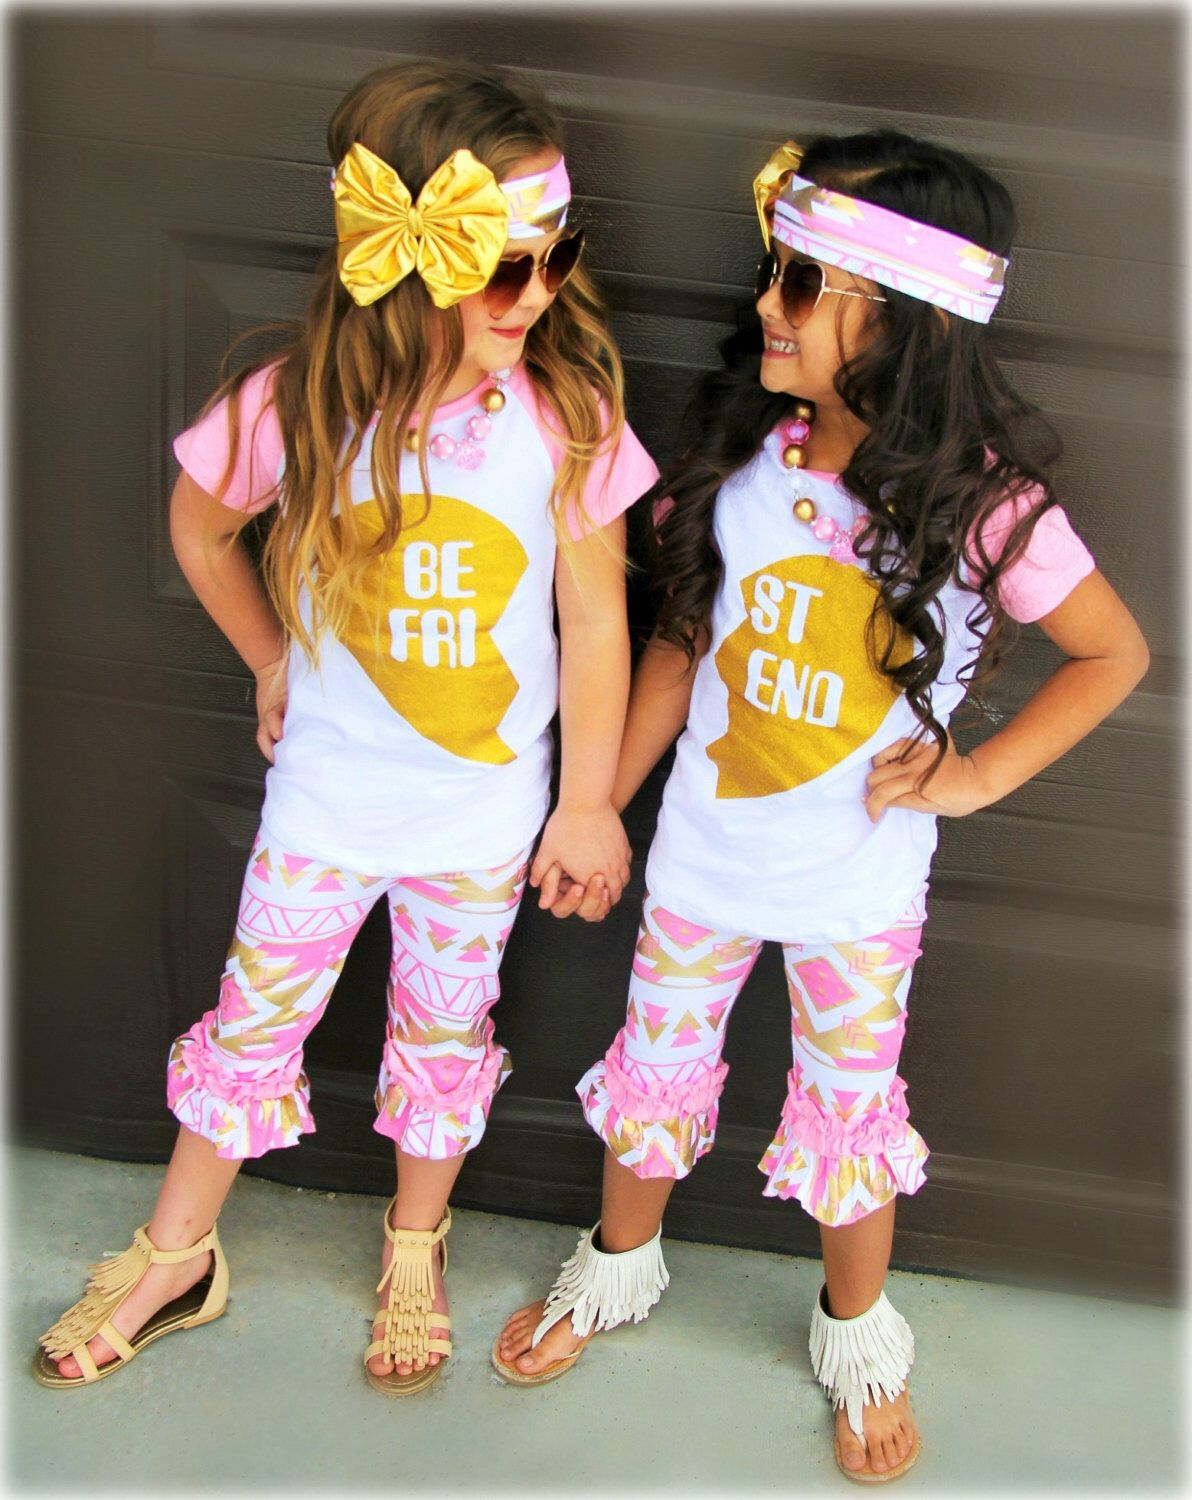 fcb6e5e001 BEST FRIEND Sets, Best Friend Shirts, Girls Clothing, Baby Girl Clothing,  Aztec Leggings, Capri Leggings,Leggings,Big Sister,Little Sister by ...